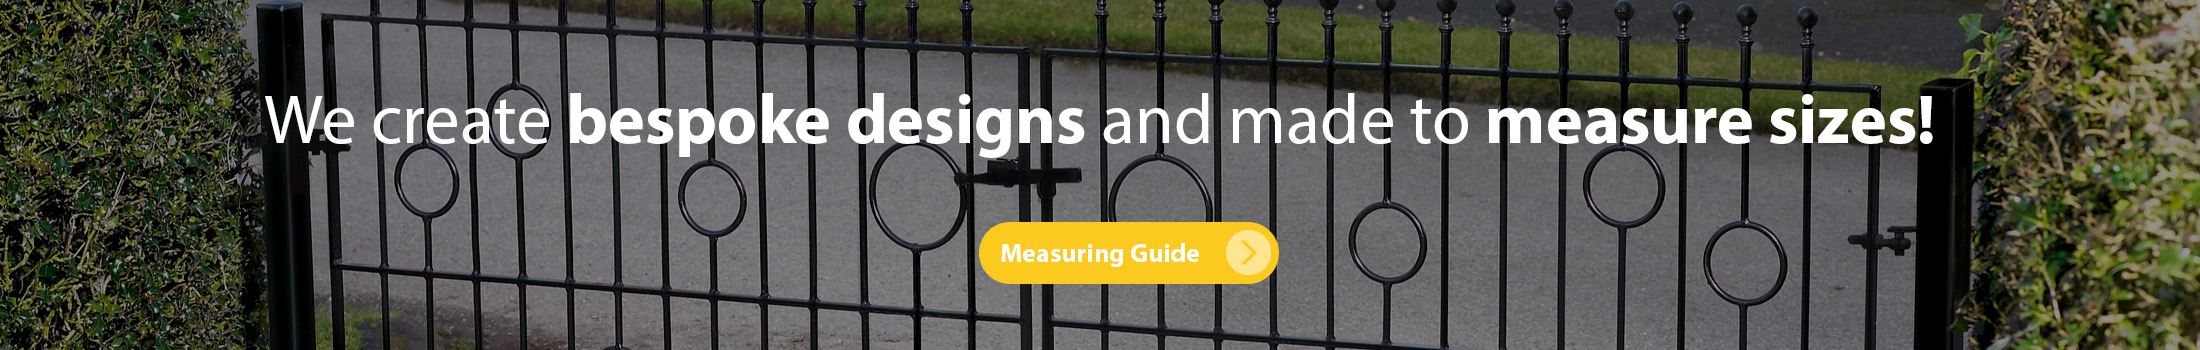 We create bespoke designs and made to measure residential gates - Click here to find out more